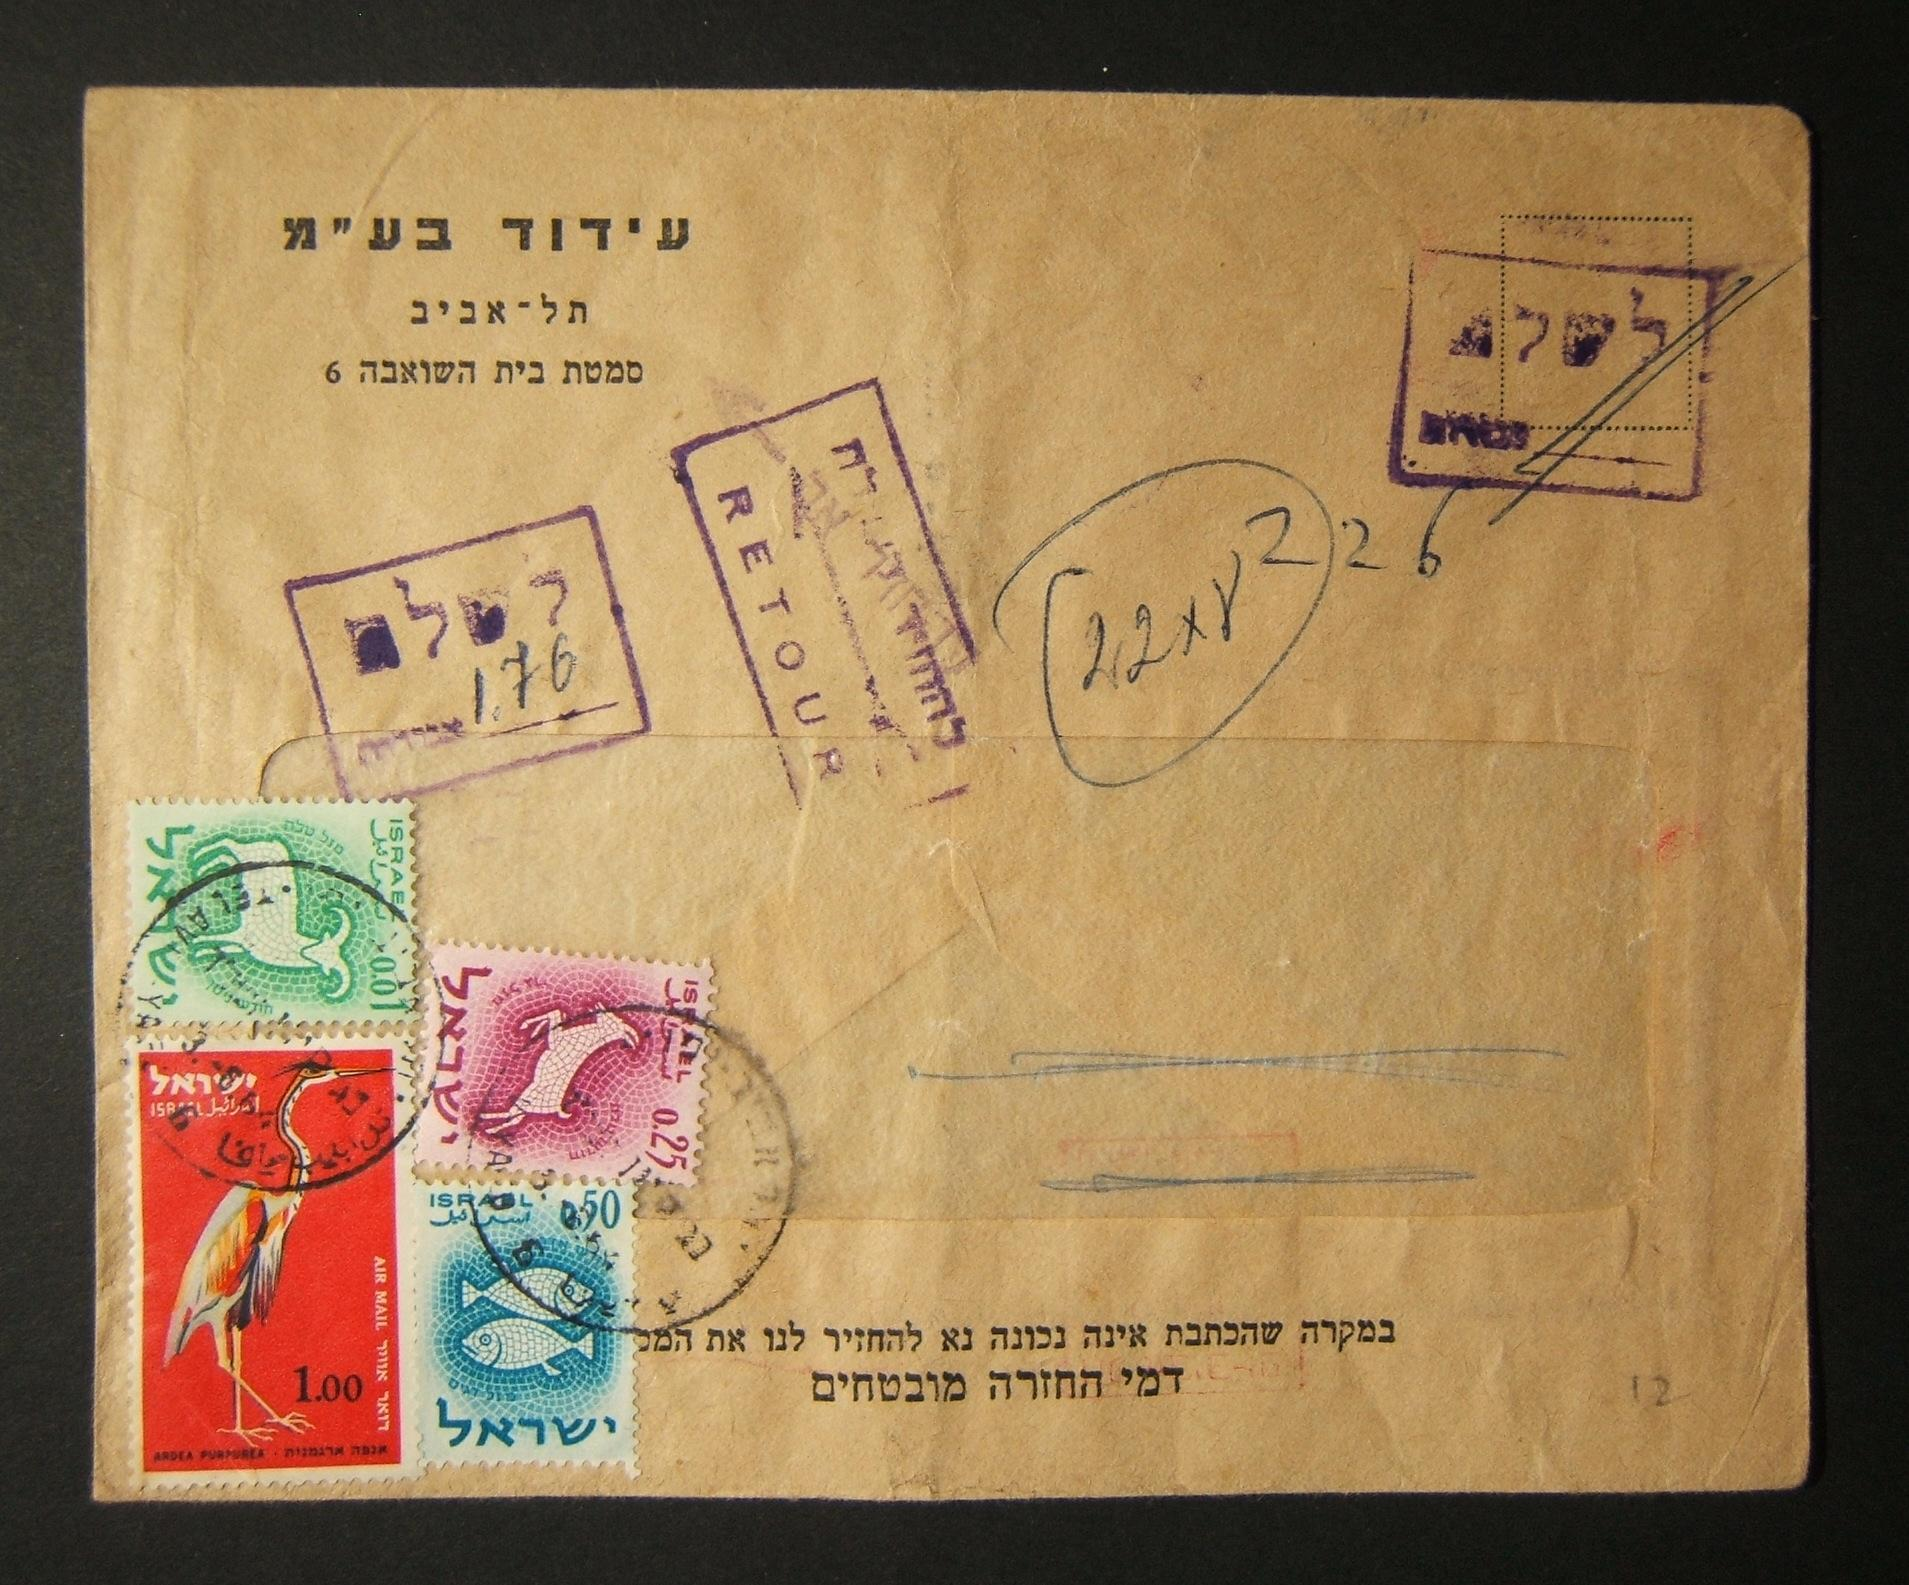 1964 domestic 'top of the pile' taxed franking: June 1964 printed matter cover ex TLV branch of Idud Ltd. franked by machine prepayment (red imprint at base) at domestic 8 Ag PM ra